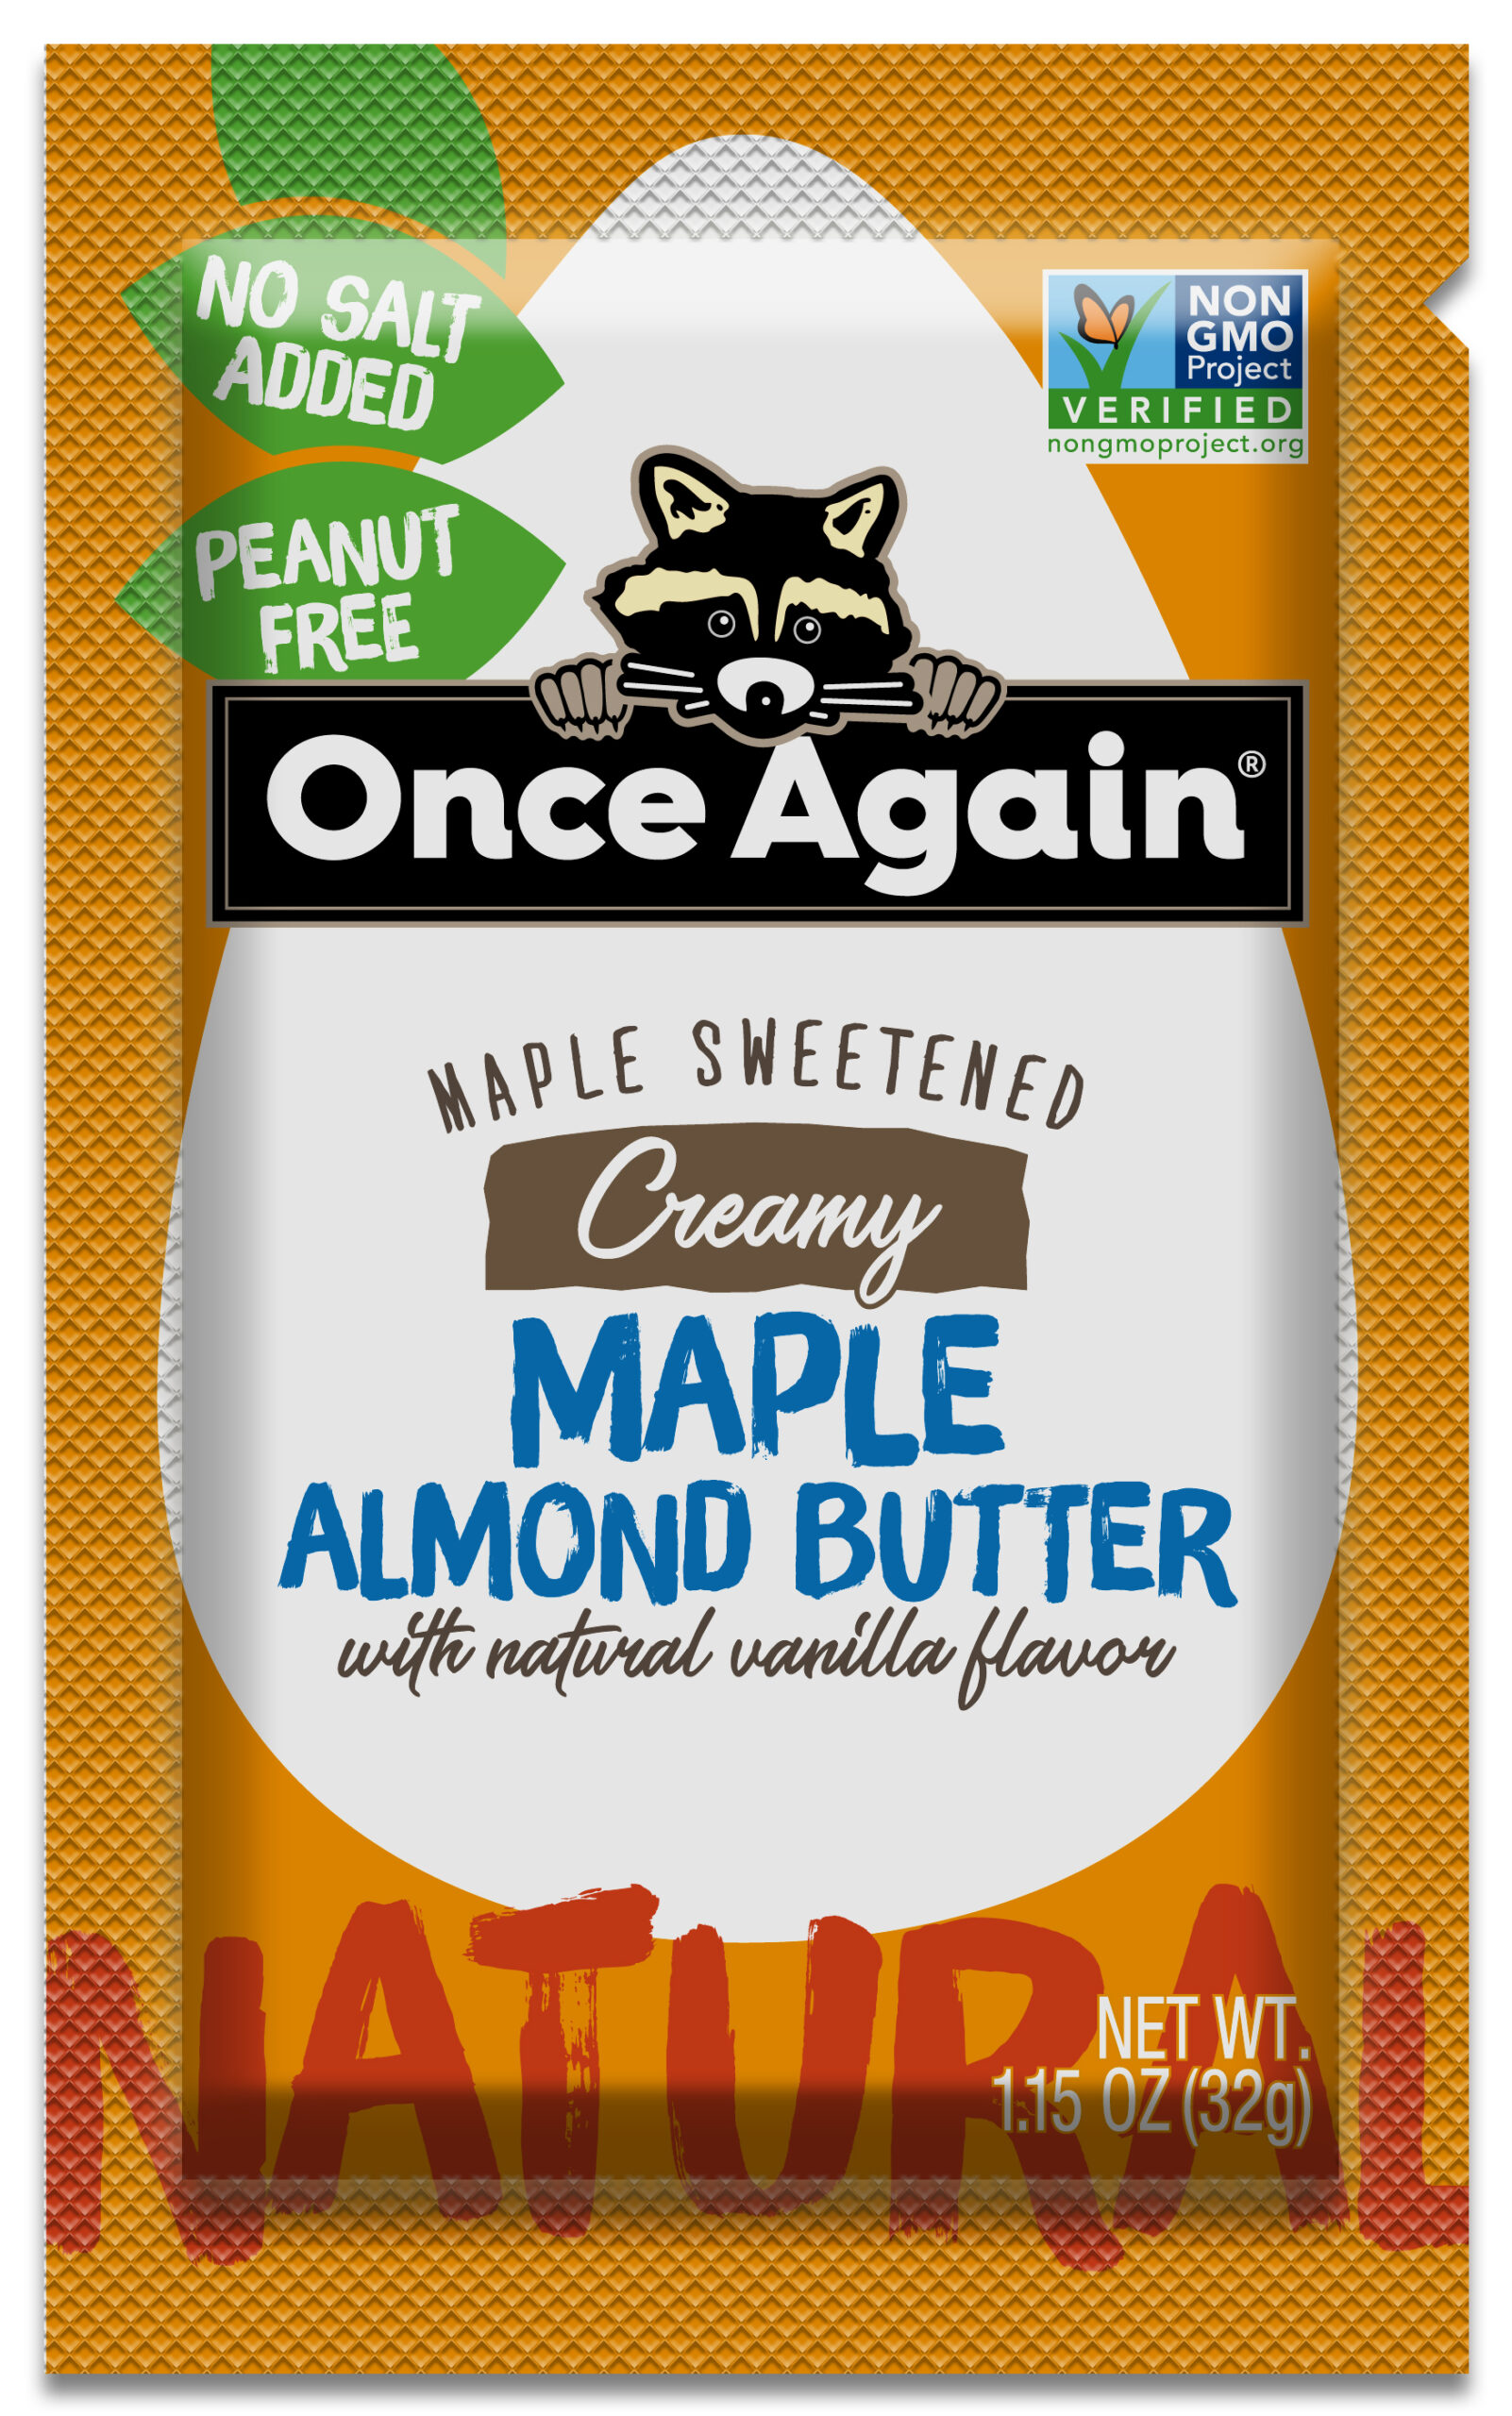 Maple Almond Butter Squeeze packs